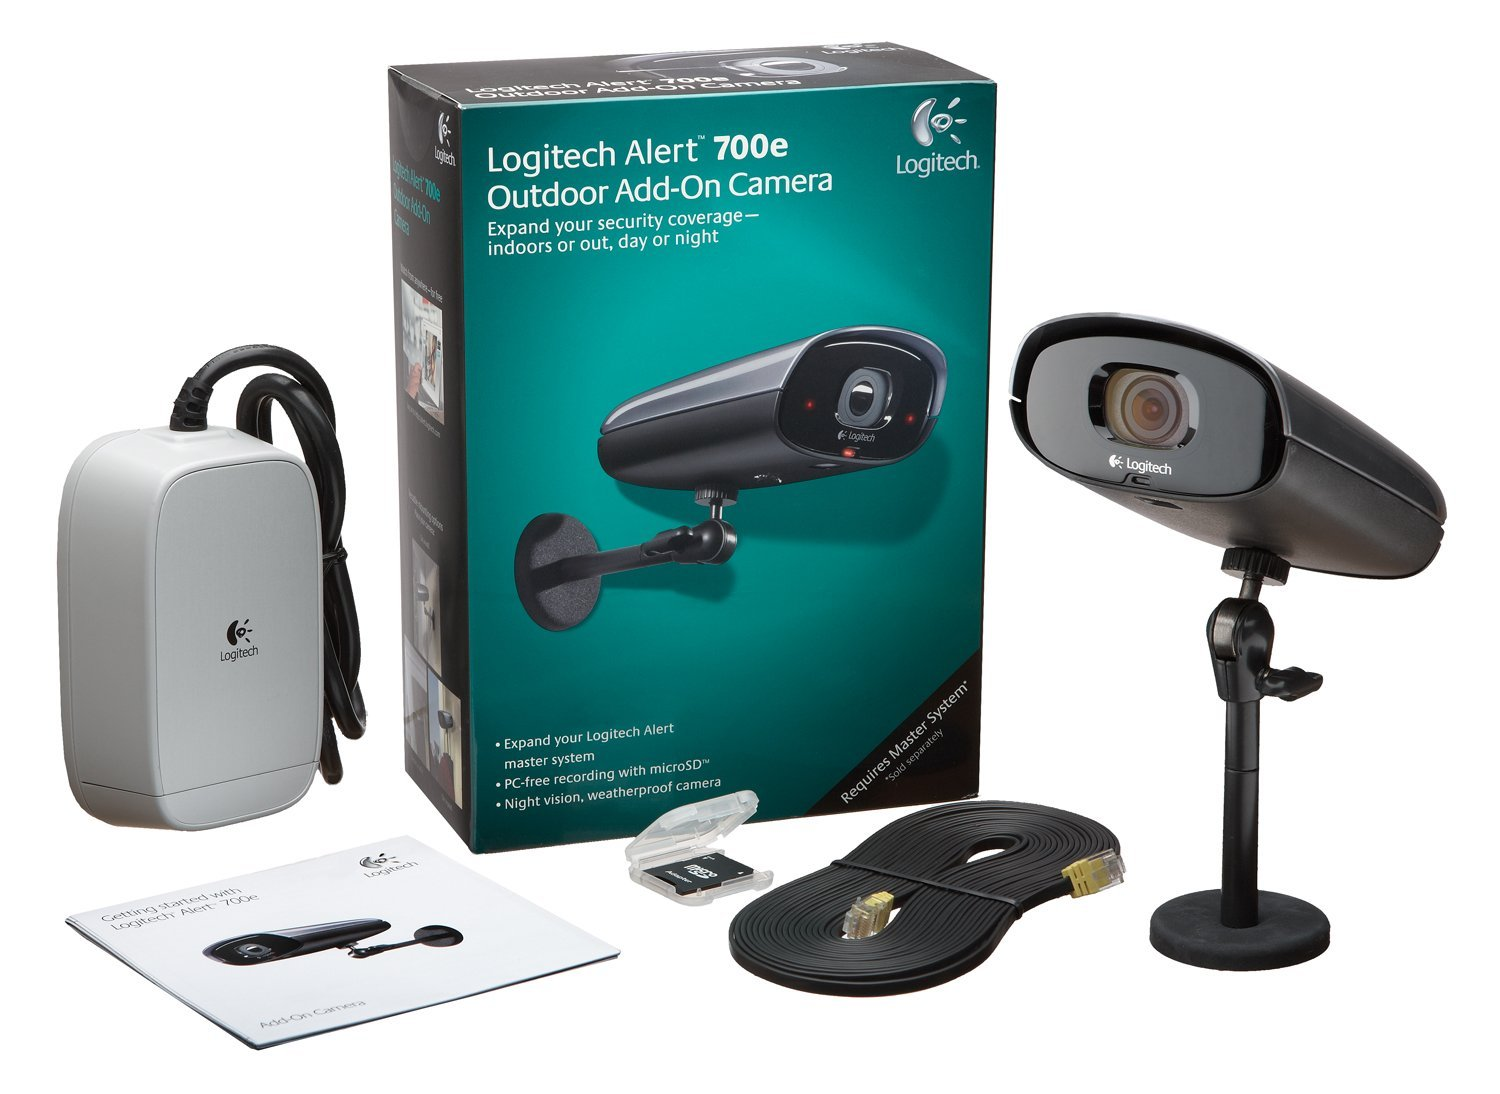 Review of Logitech Alert 700e Outdoor Add-On HD Quality Secu ...